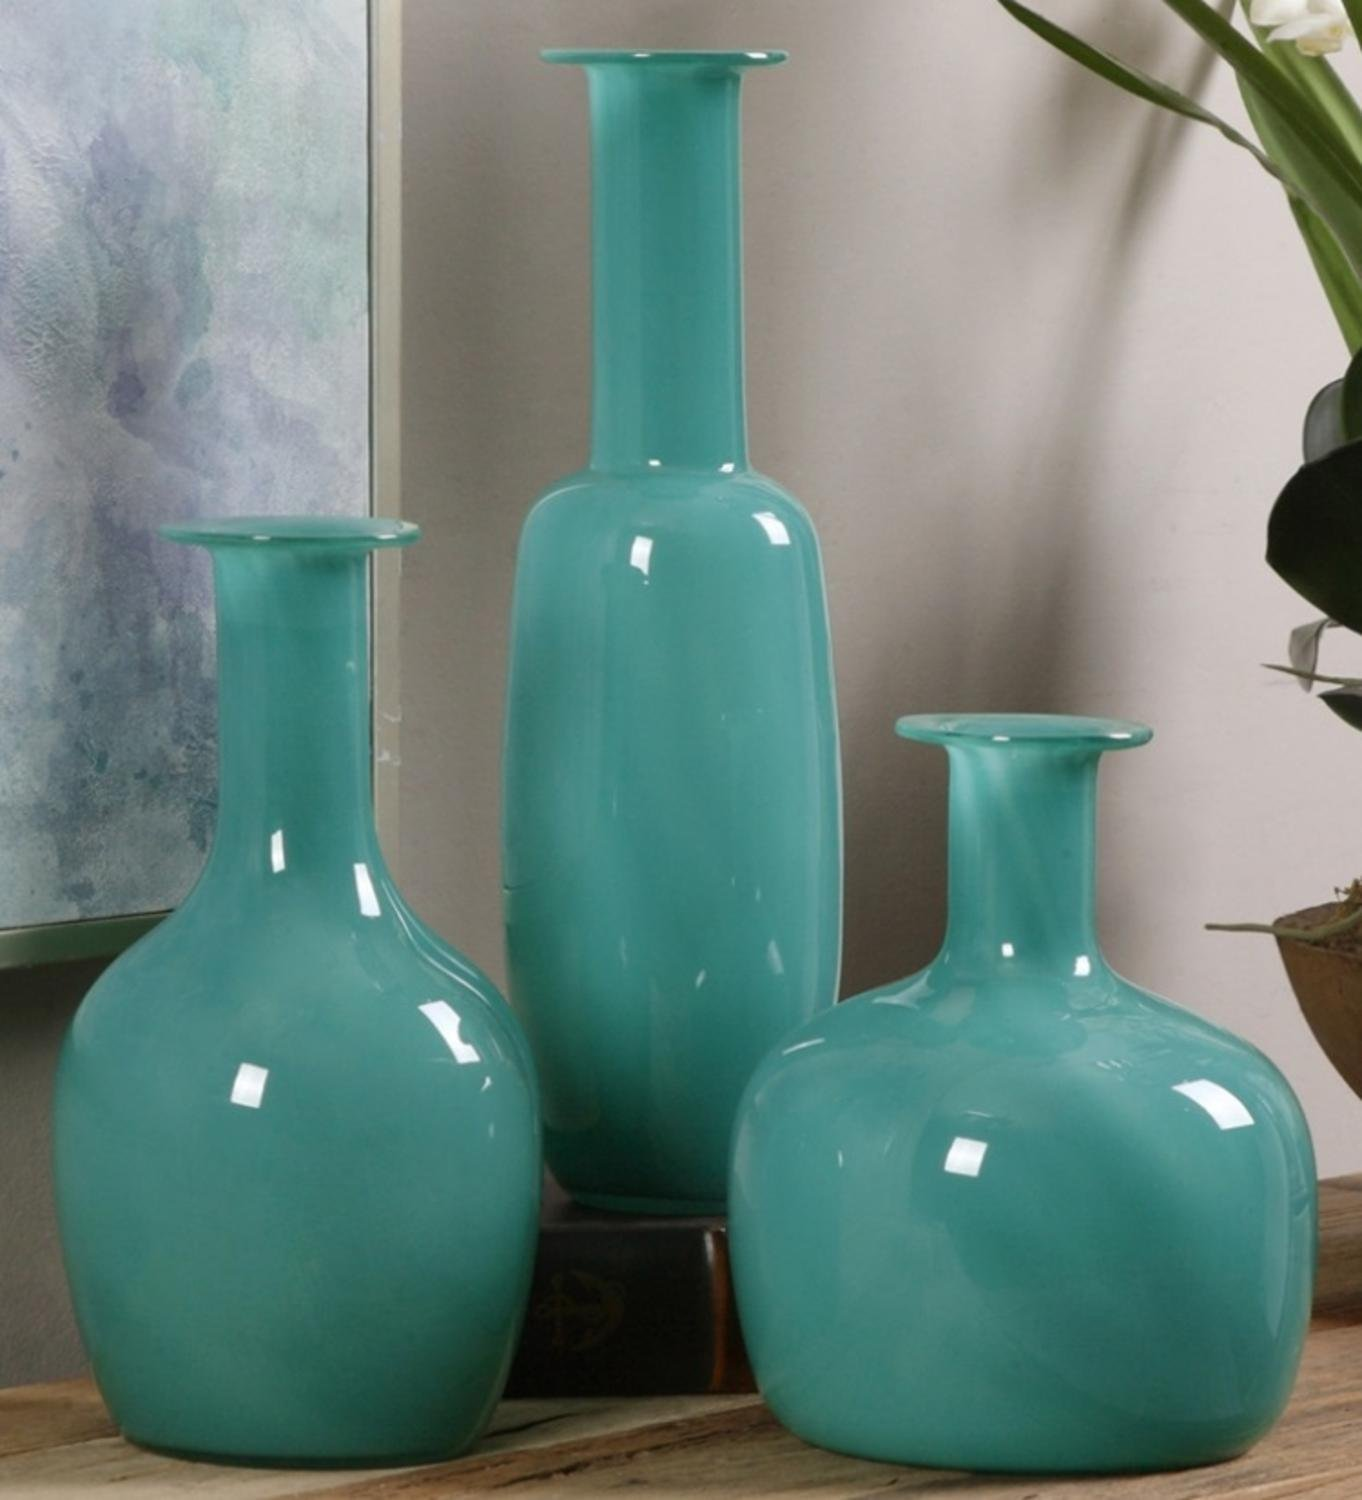 Set of 3 Persian Turquoise Green Glass Decorative Vases 11'' - 14'' - 18''